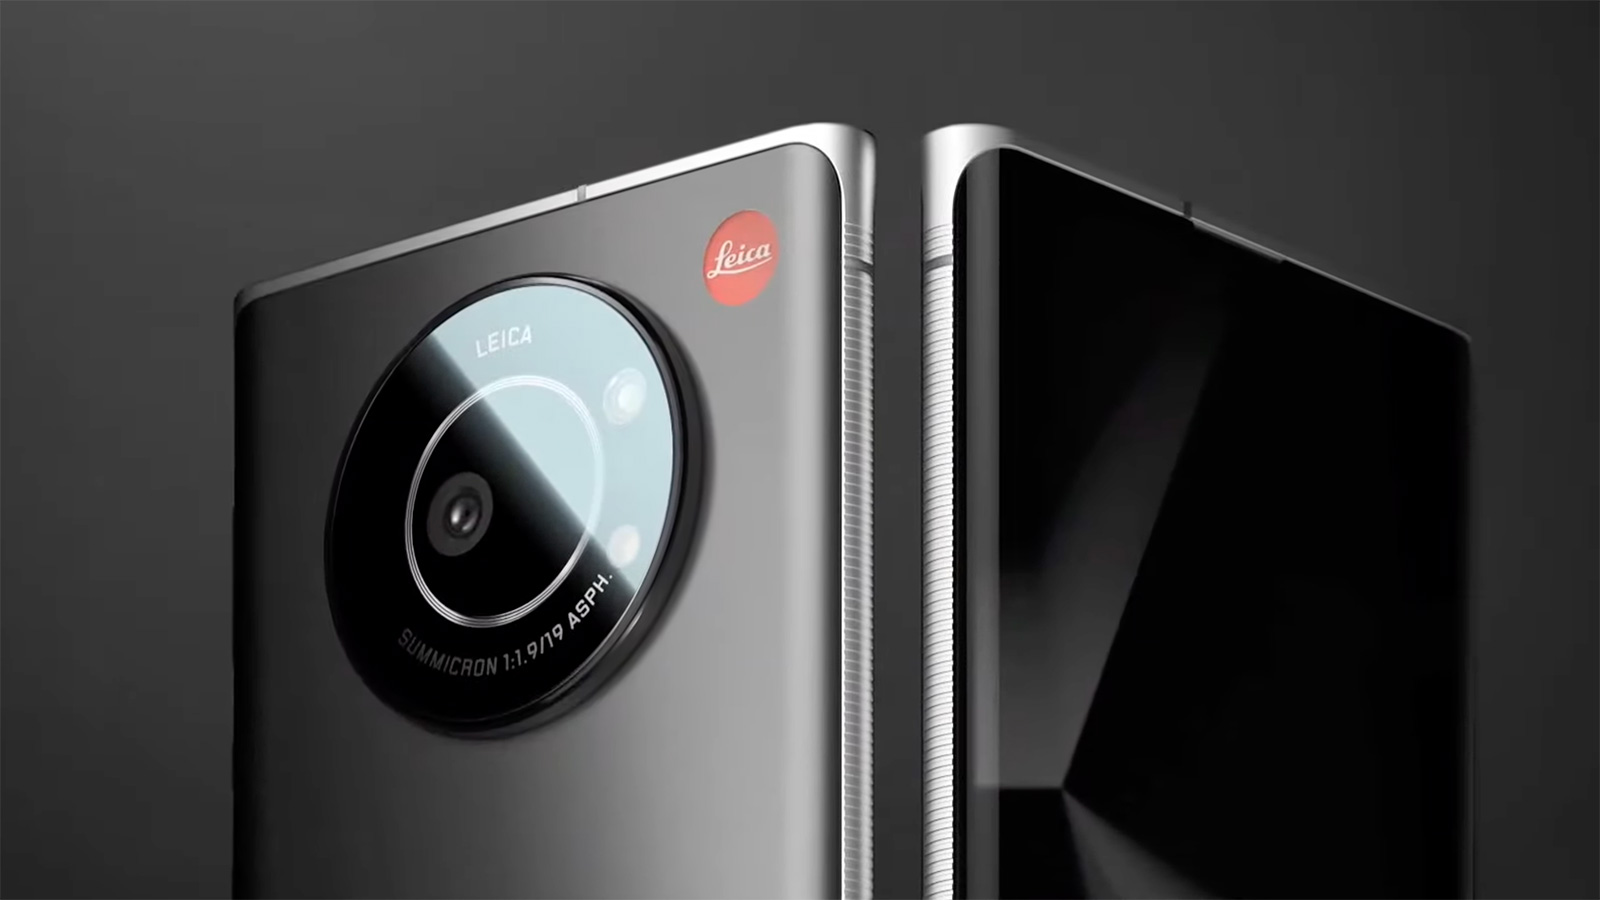 Leica's very own Leitz Phone 1 is a rebadged Sharp Aquos R6